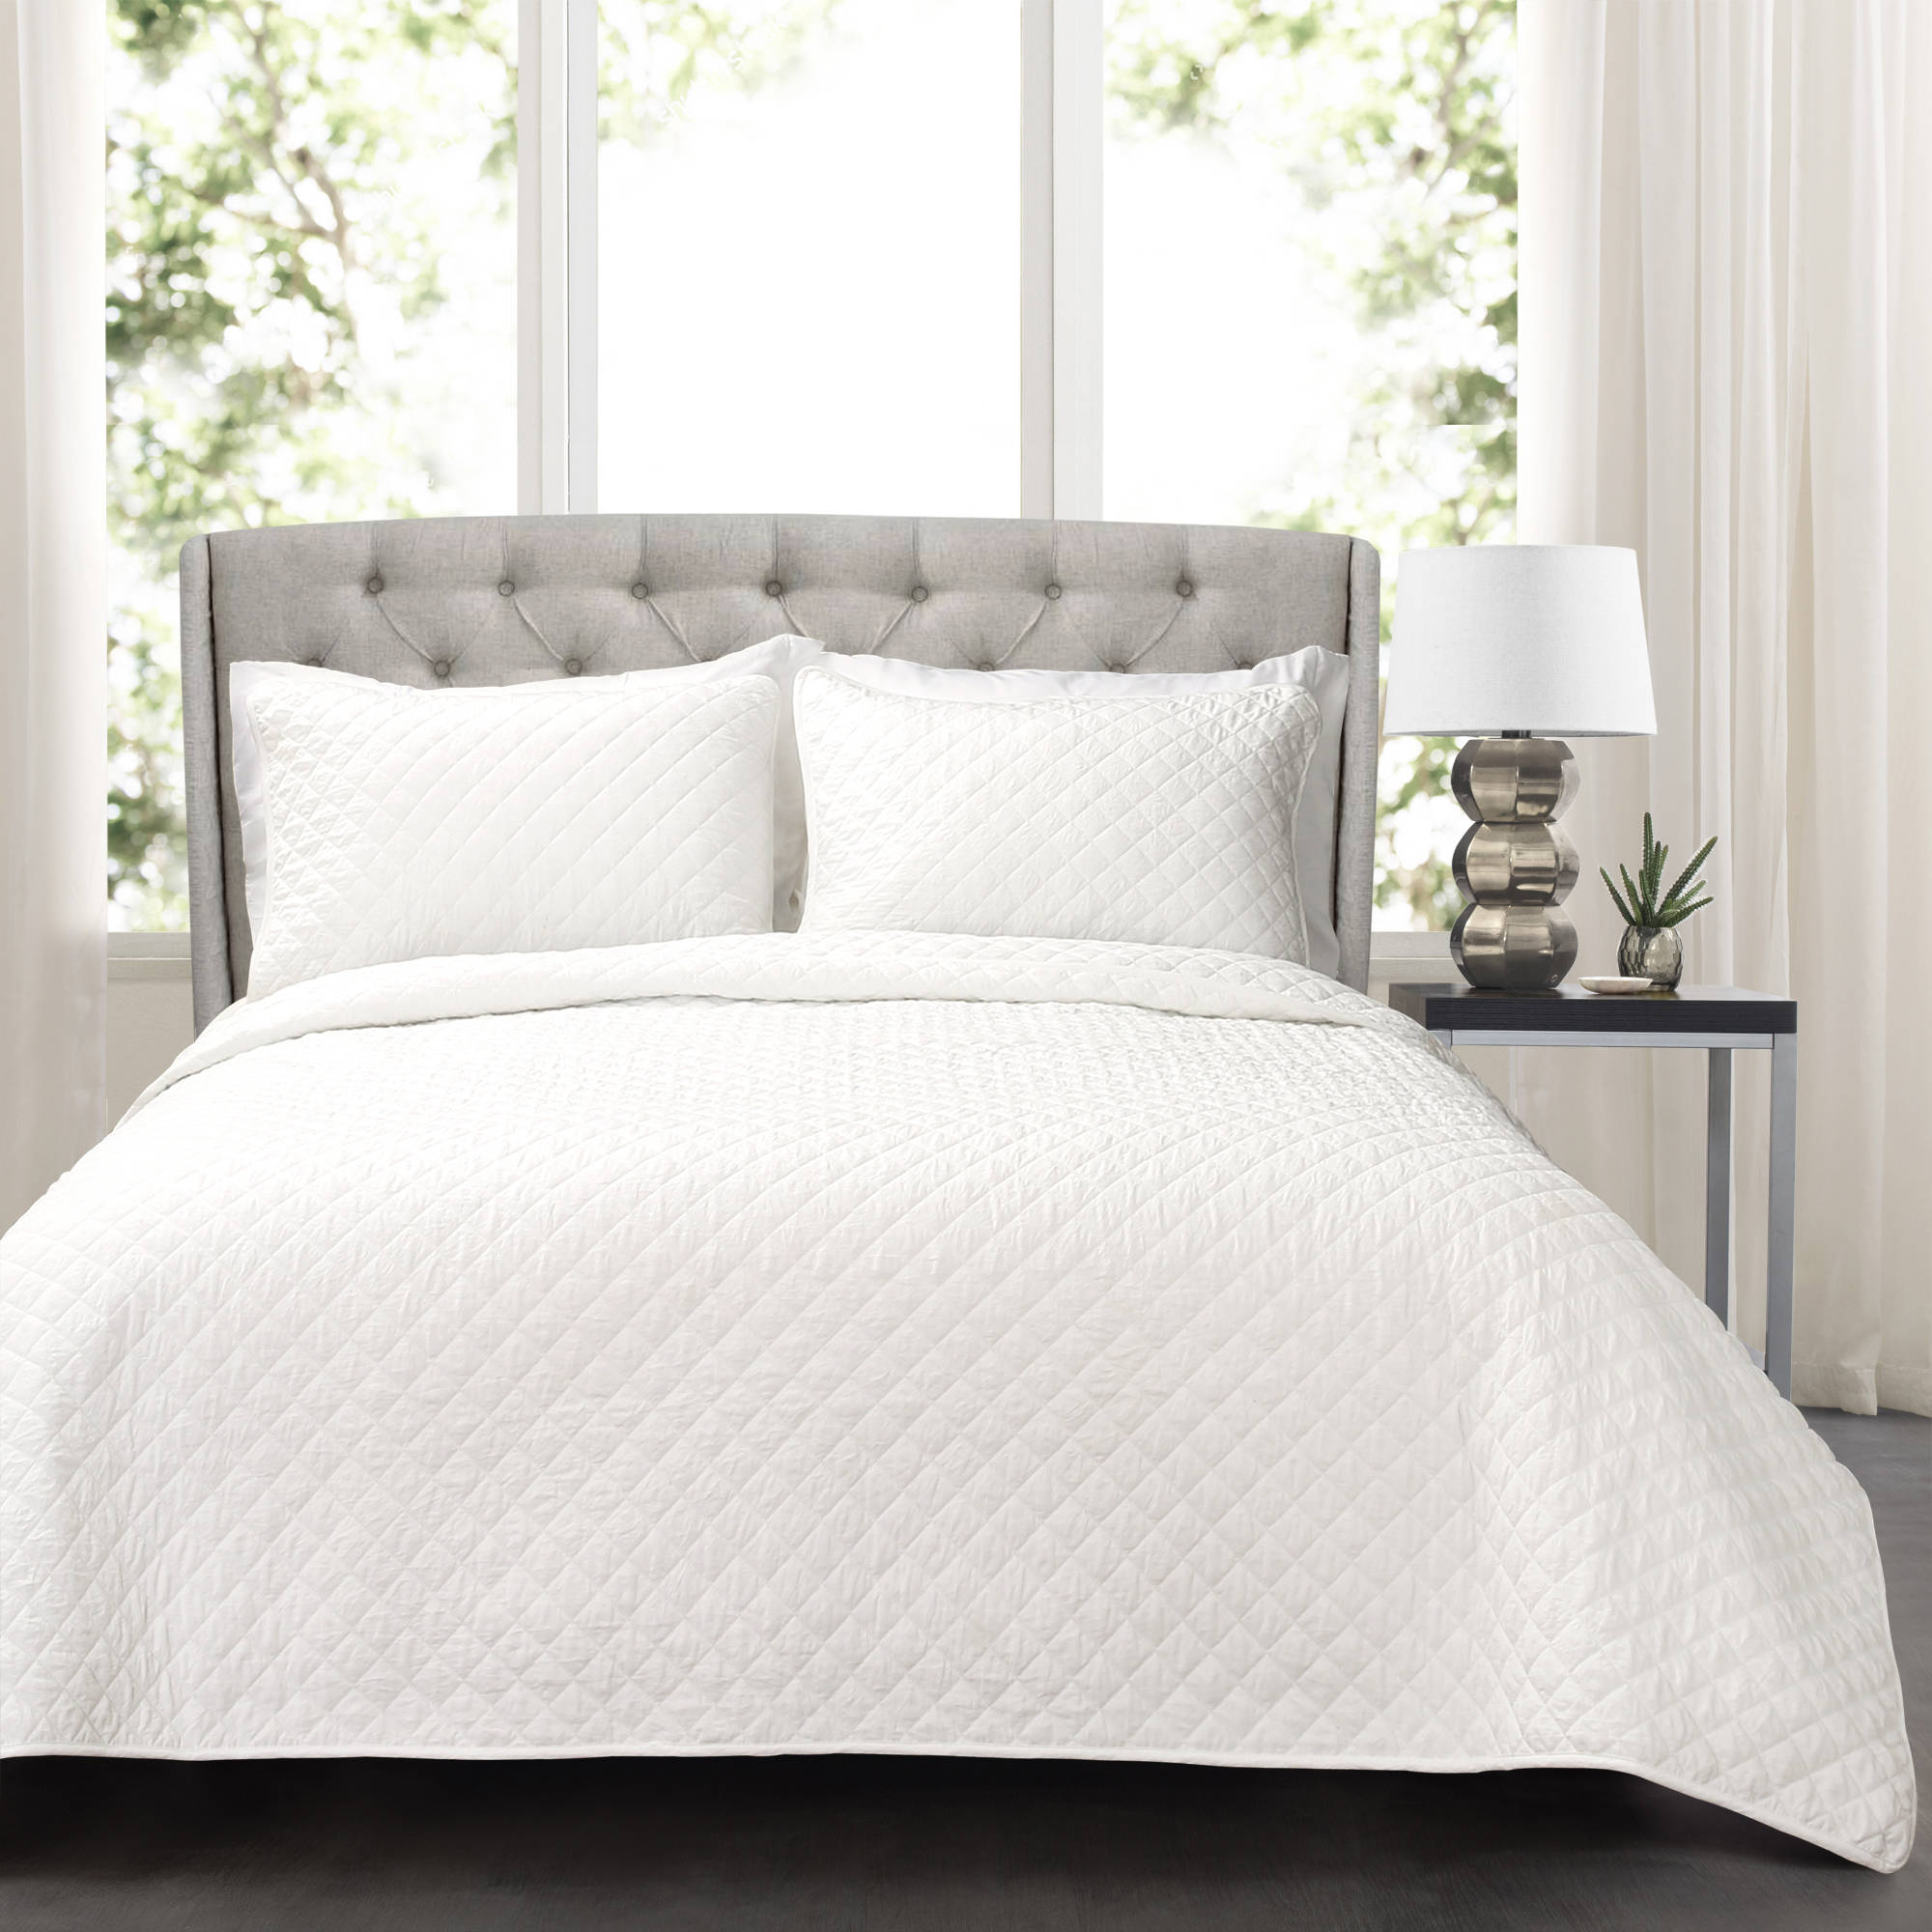 Ava Diamond Oversized Cotton Quilt 3pc Set